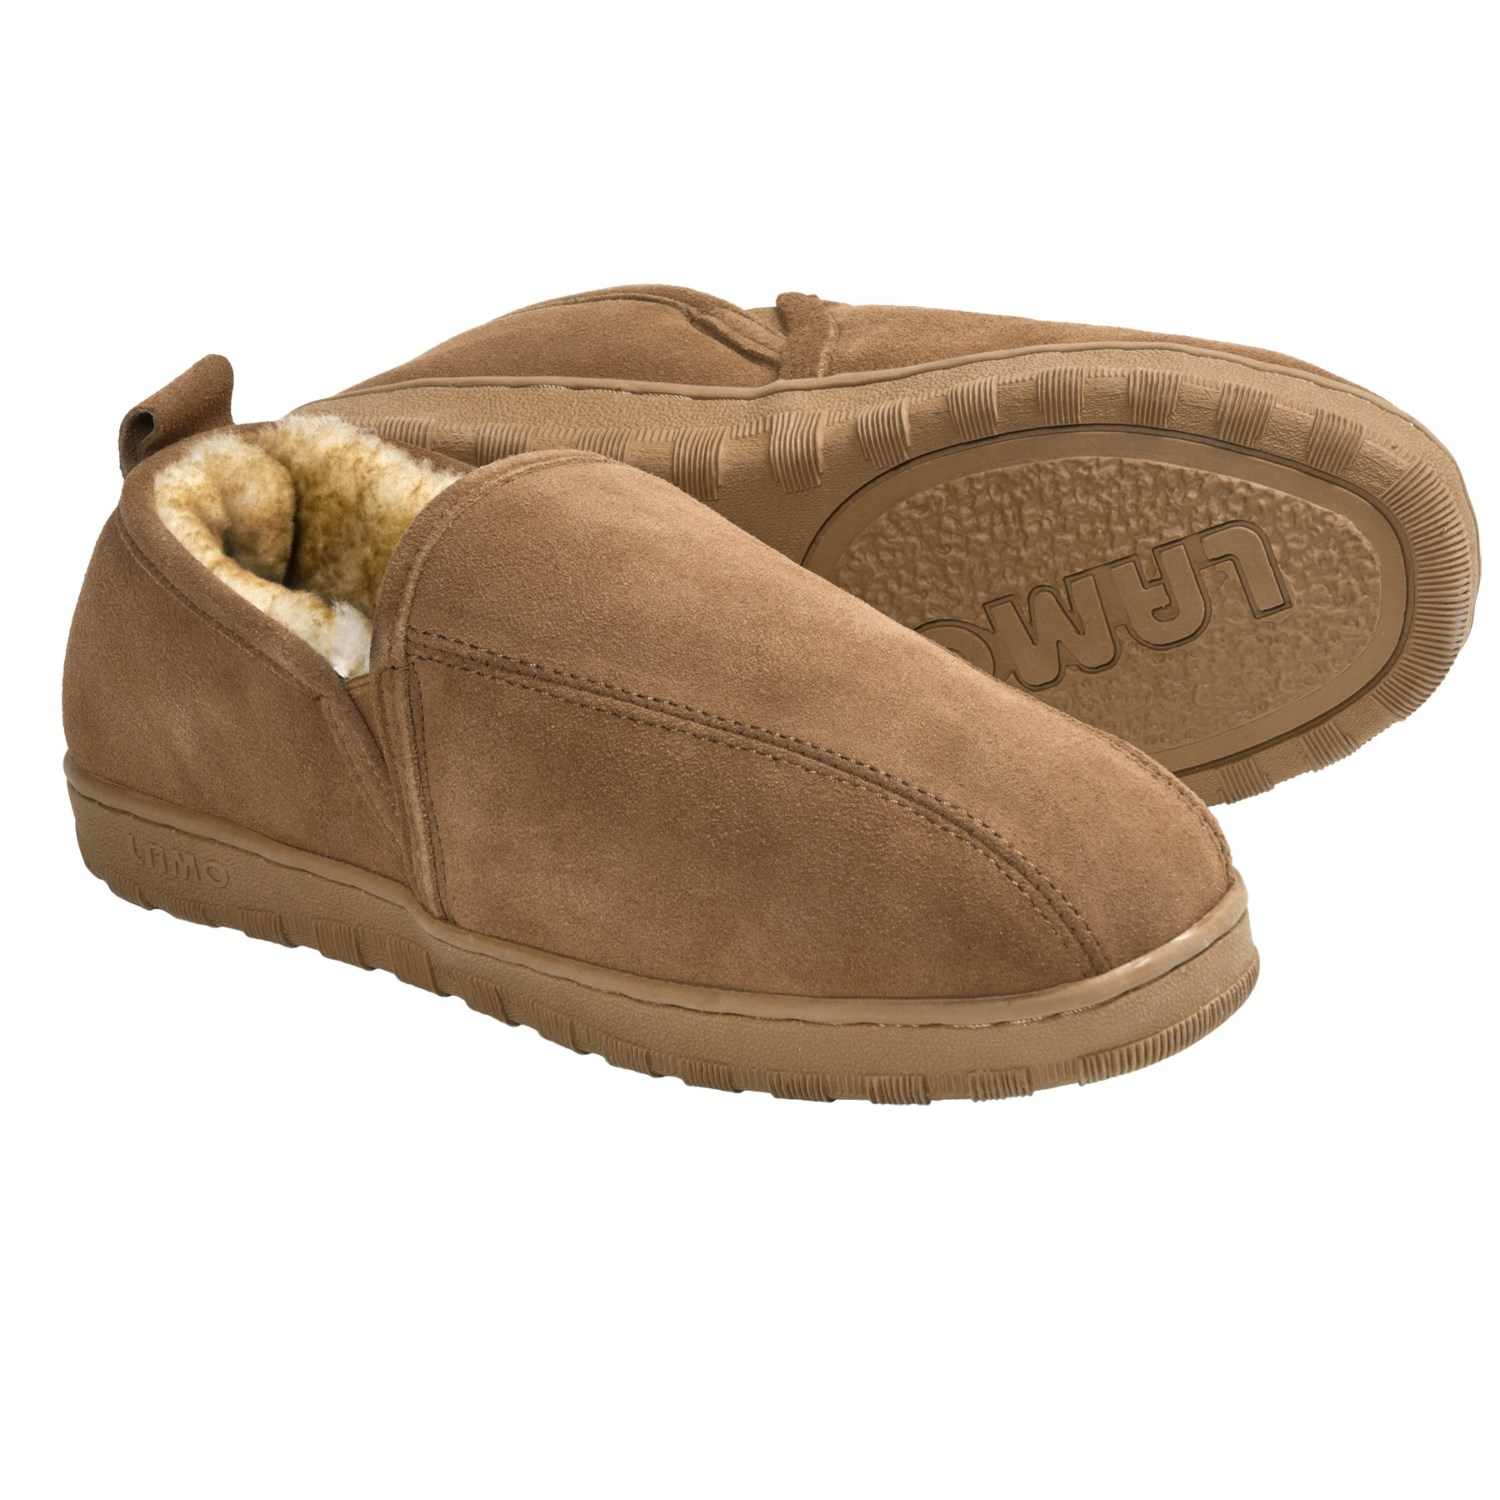 Uggs Mens Shoes Nordstrom